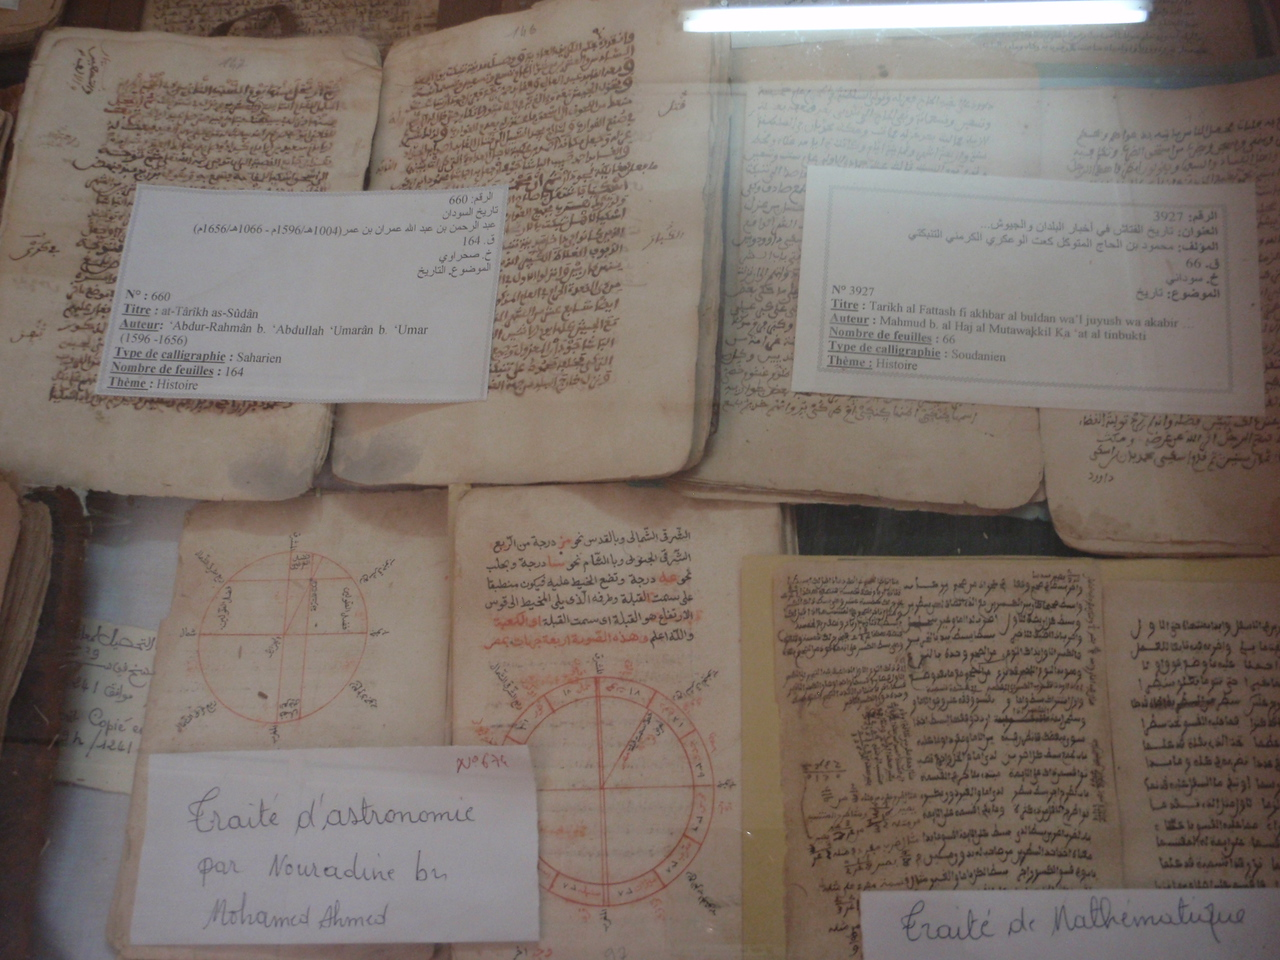 107_Timbuktu Manuscripts Project  Cooperation Univ  Oslo, Norway